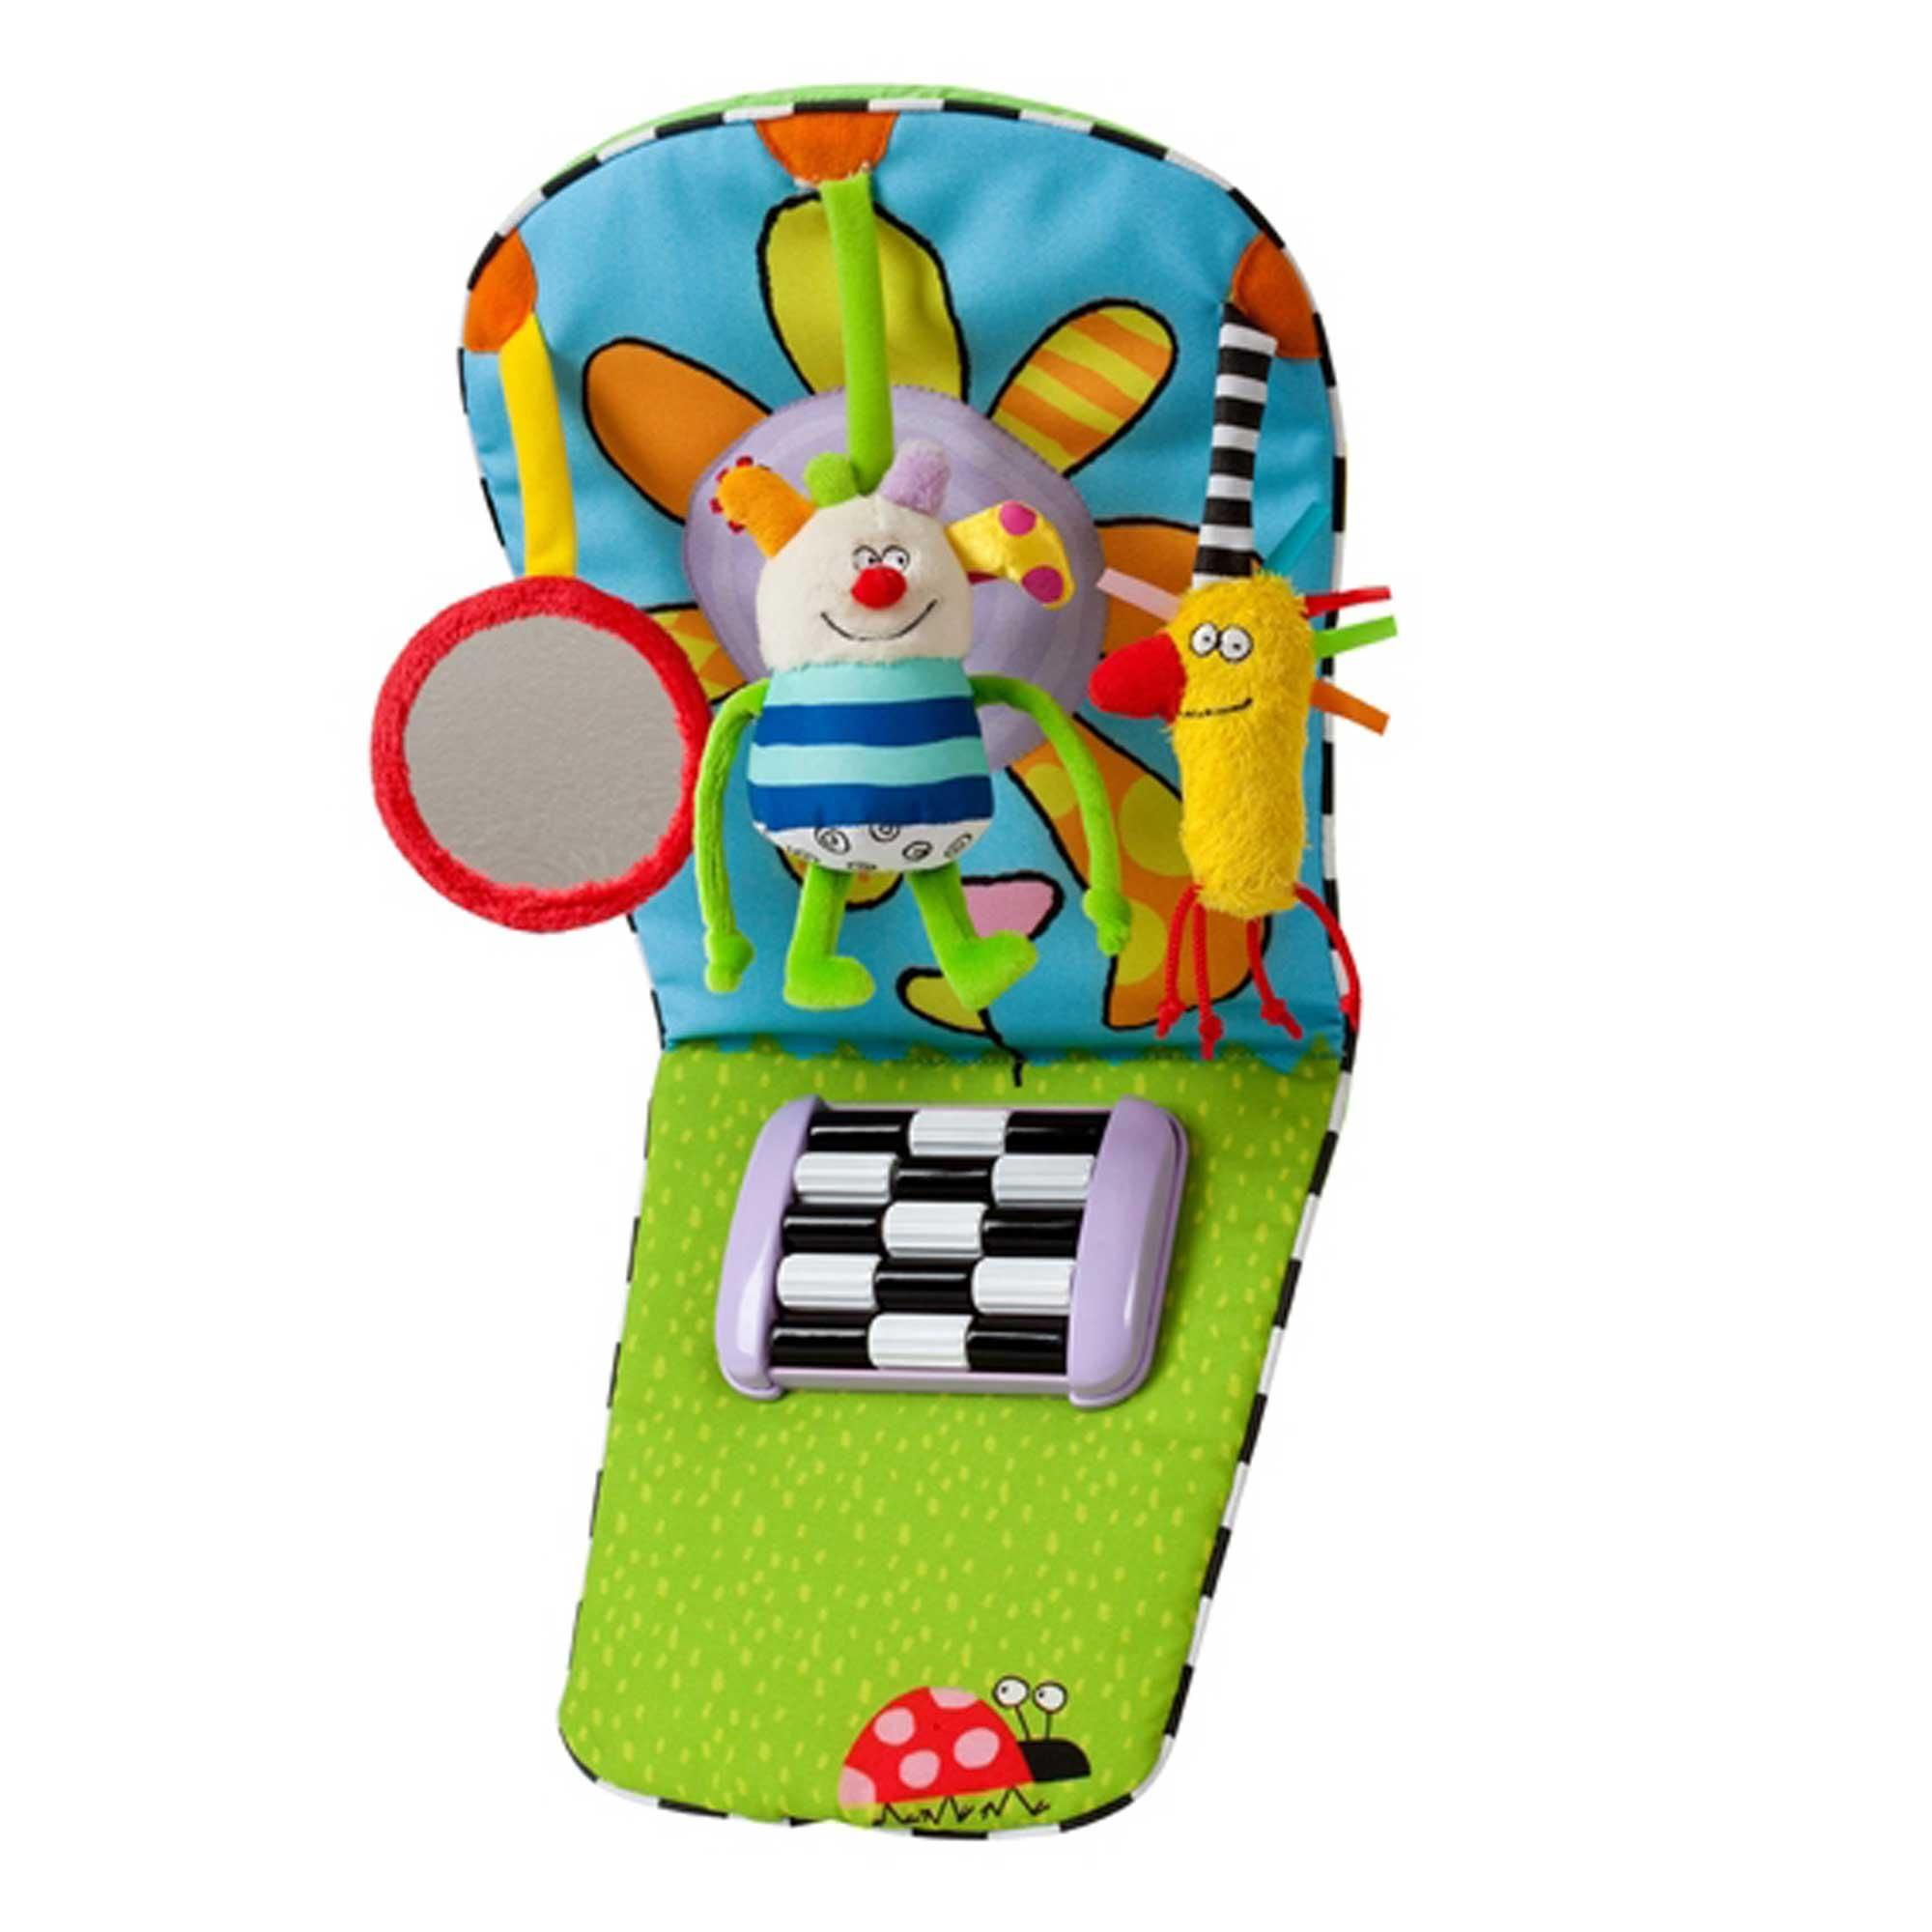 Taf Toys Feet Fun Car Toy Travel Activity Centre Amazon Baby